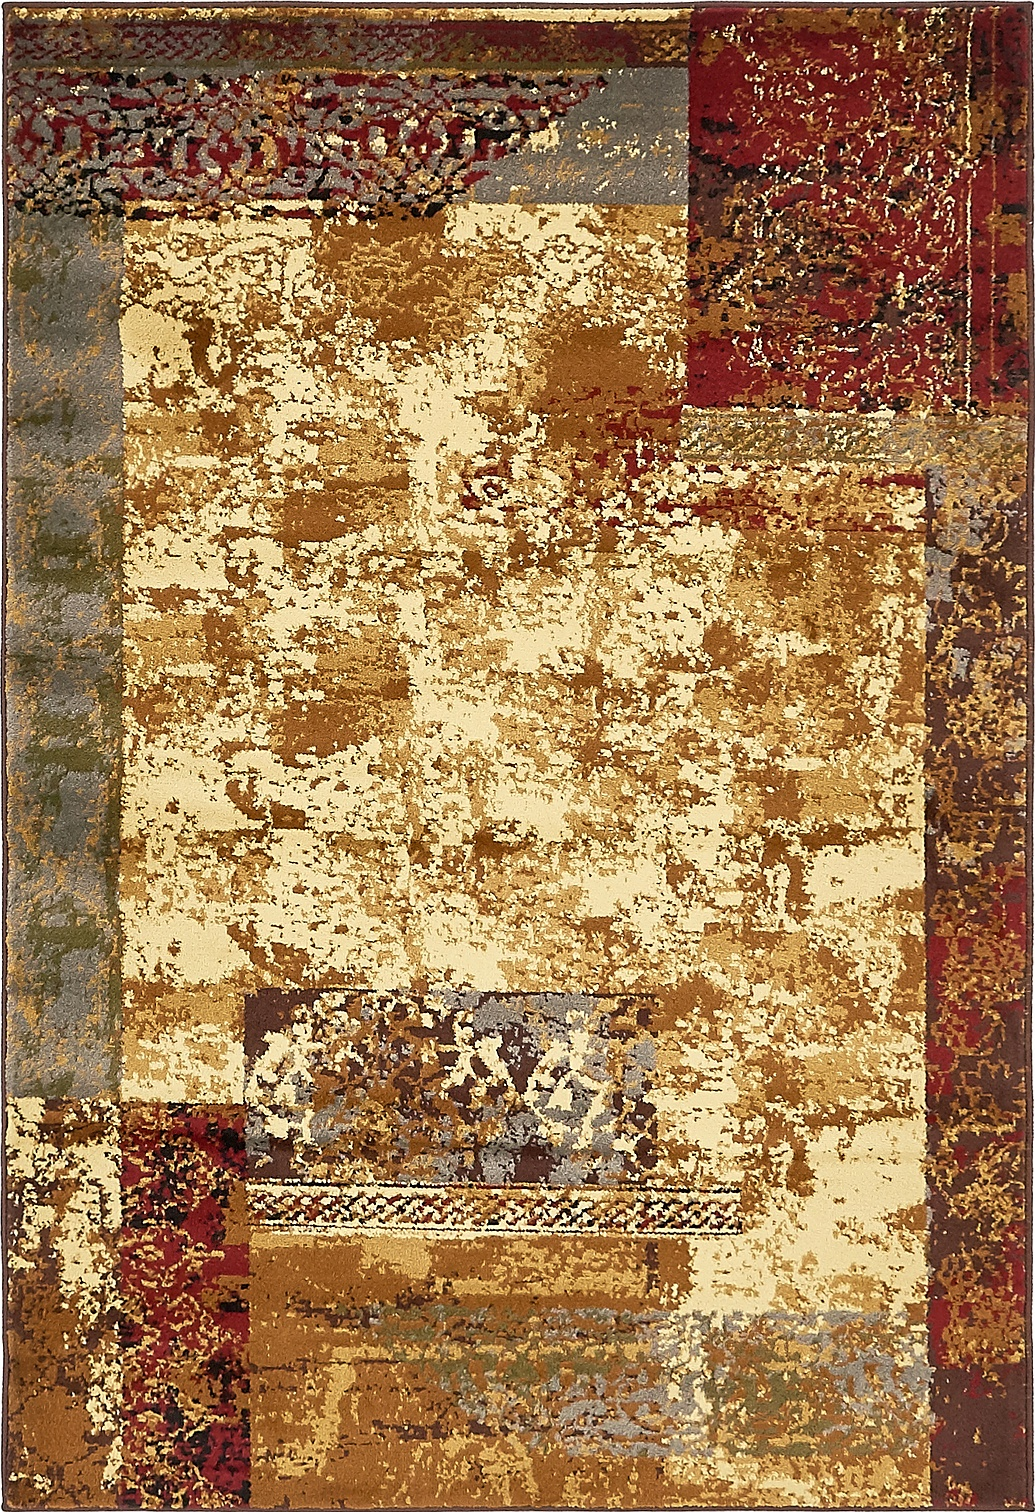 contemporary home offices designs with rugs floor | Modern Contemporary All Décor Floor Rugs Multi Camden Area ...